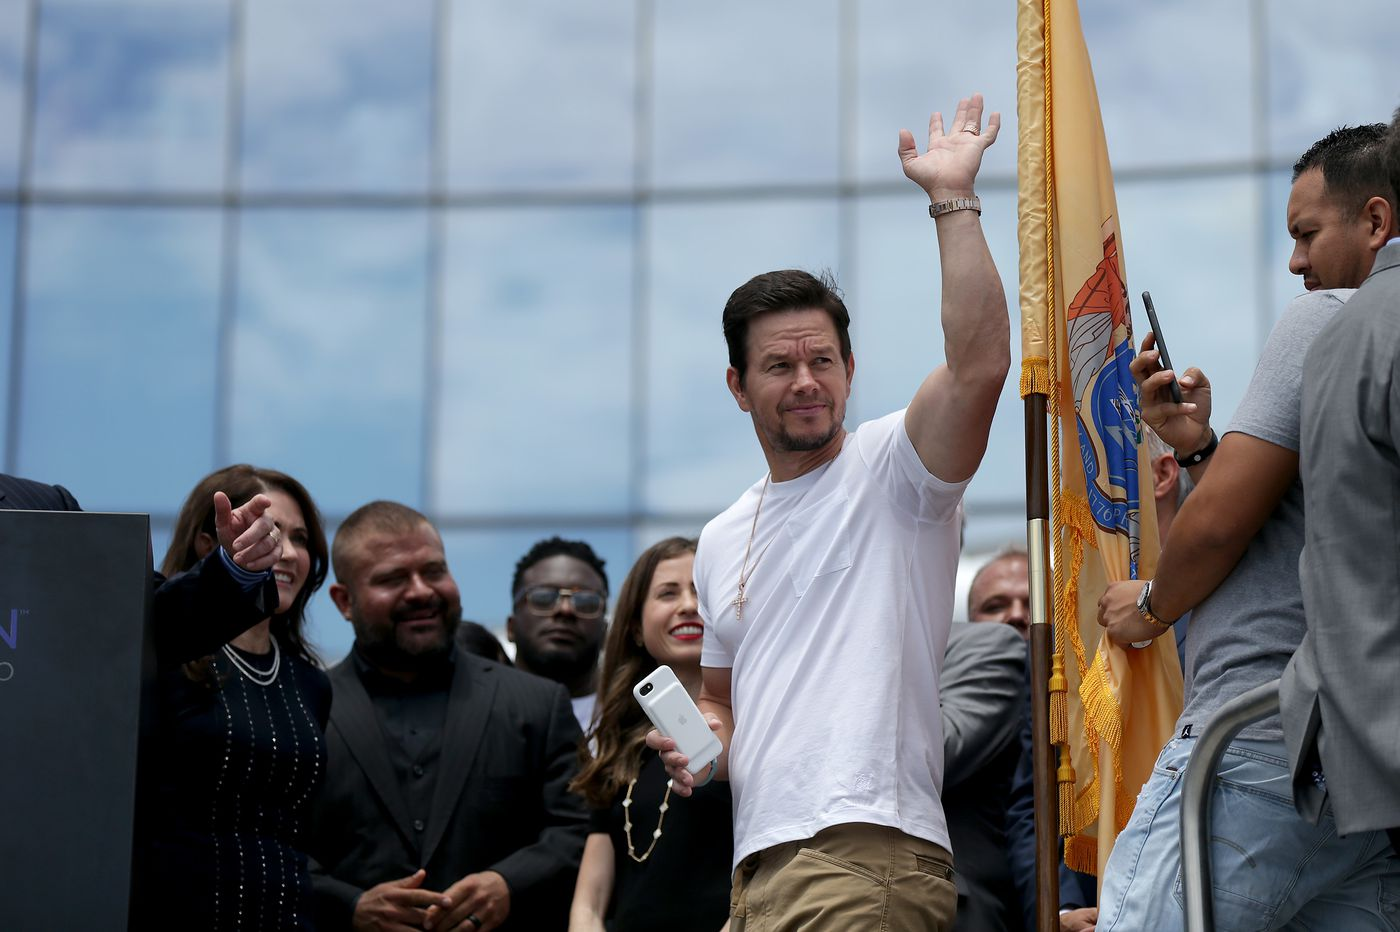 Crazy day at Atlantic City sportsbook as Mark Wahlberg bets the Eagles, Patriots and … Browns